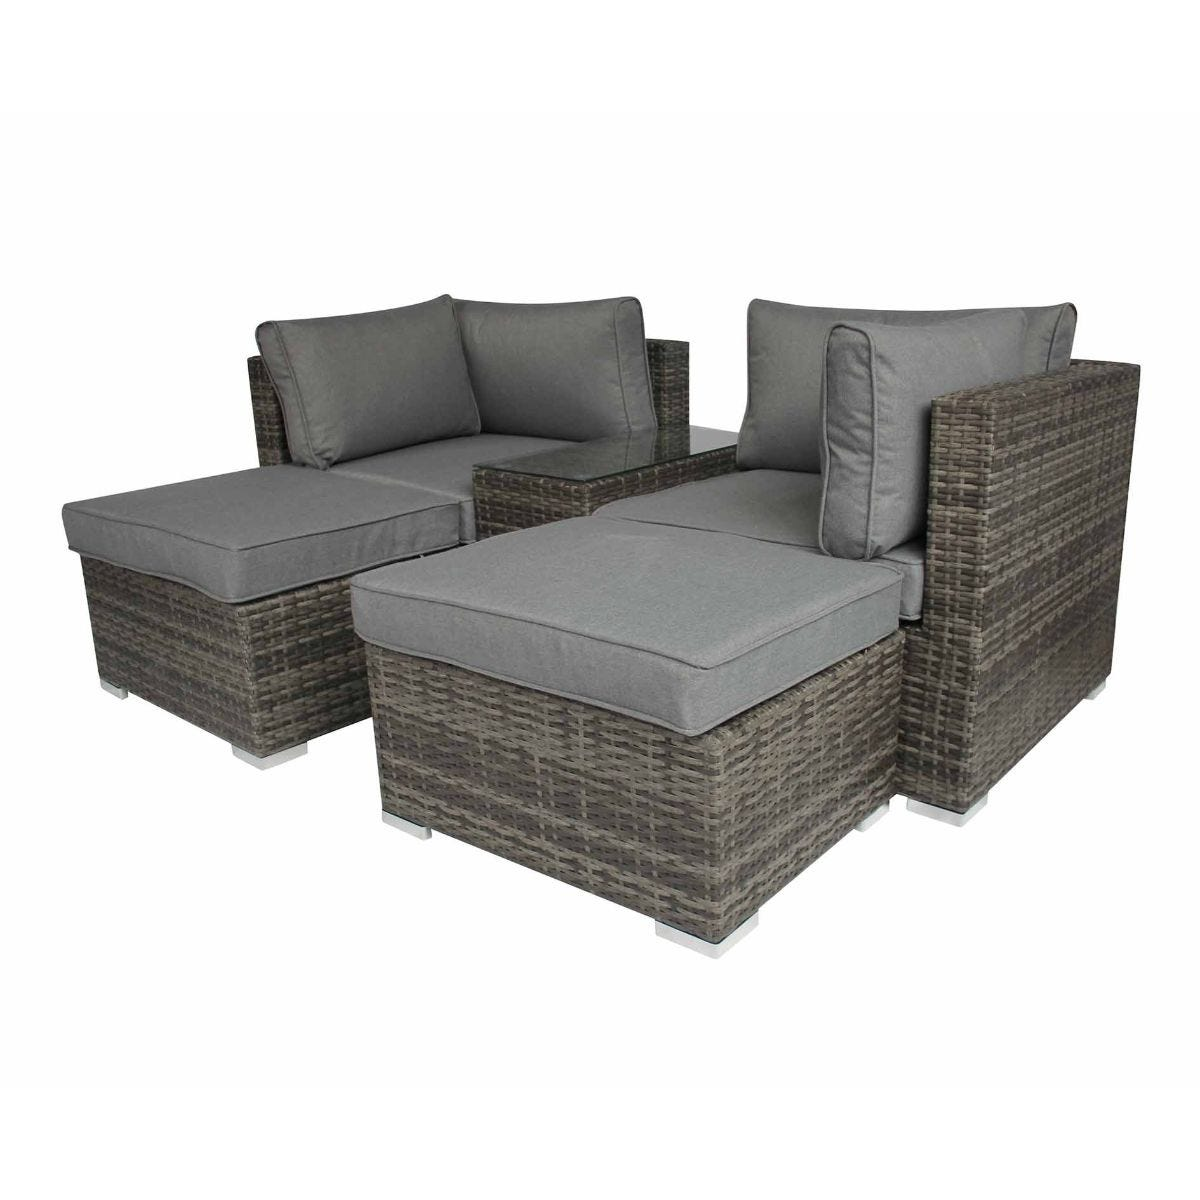 Charles Bentley Verona 5 in 1 Multifunctional Rattan Garden Lounge Set, Grey